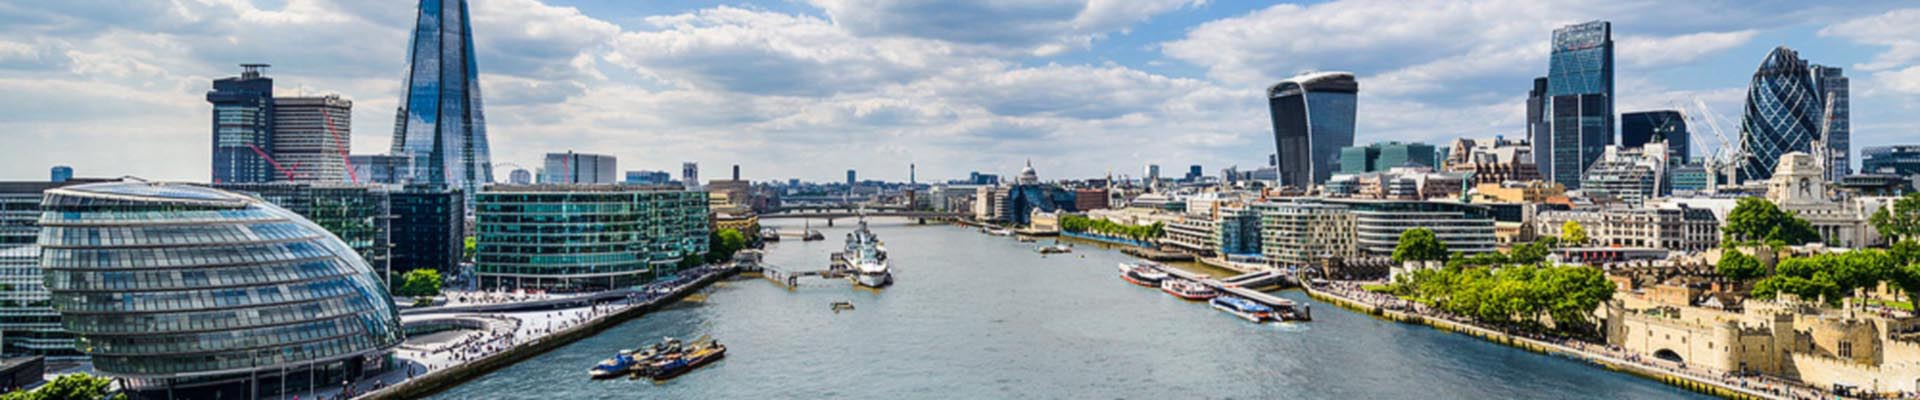 amax-business-intelligence-security-london-panorama-1920x400